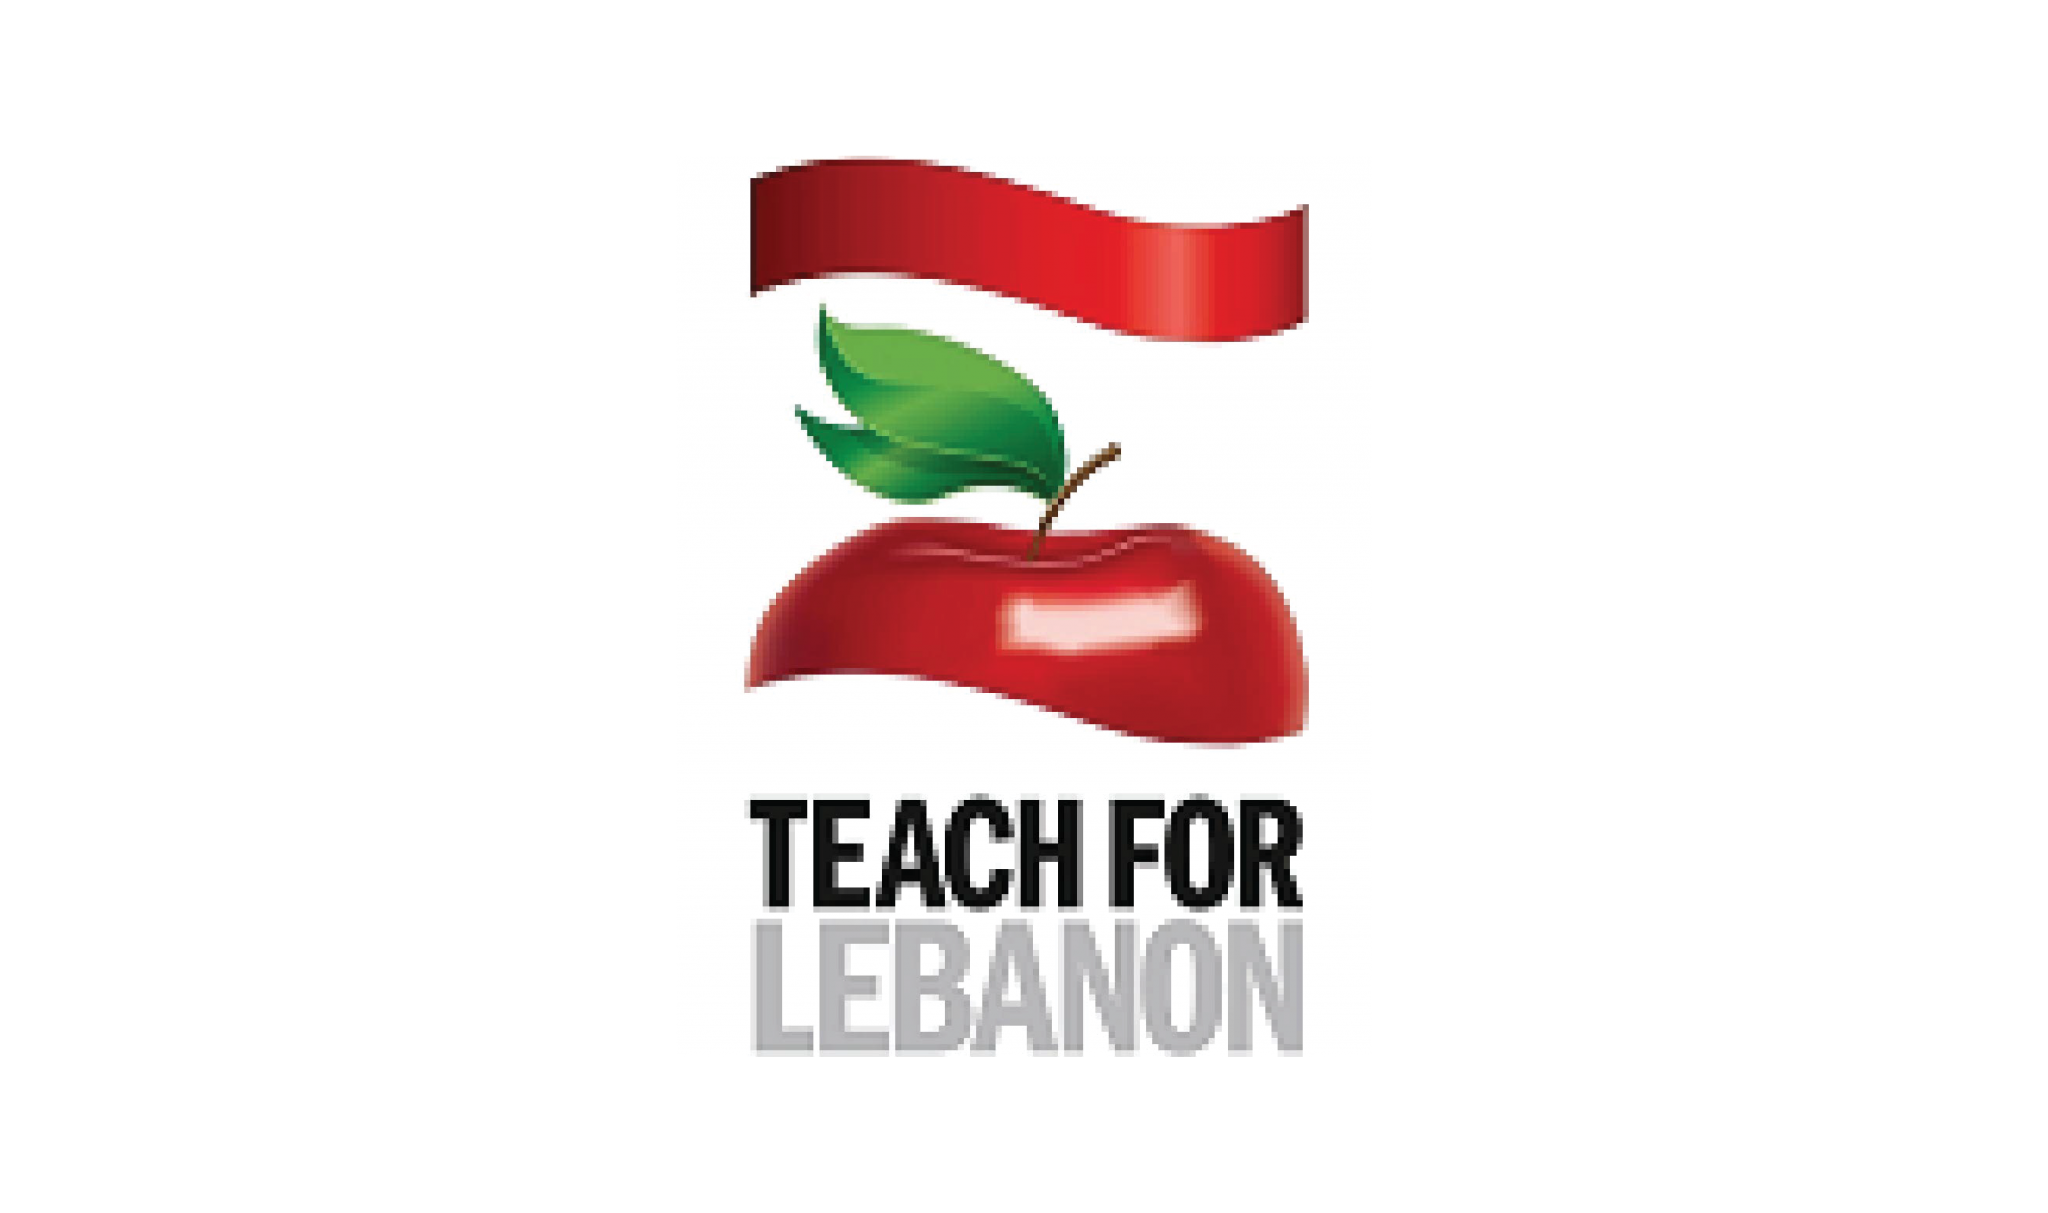 Teach For Lebanon